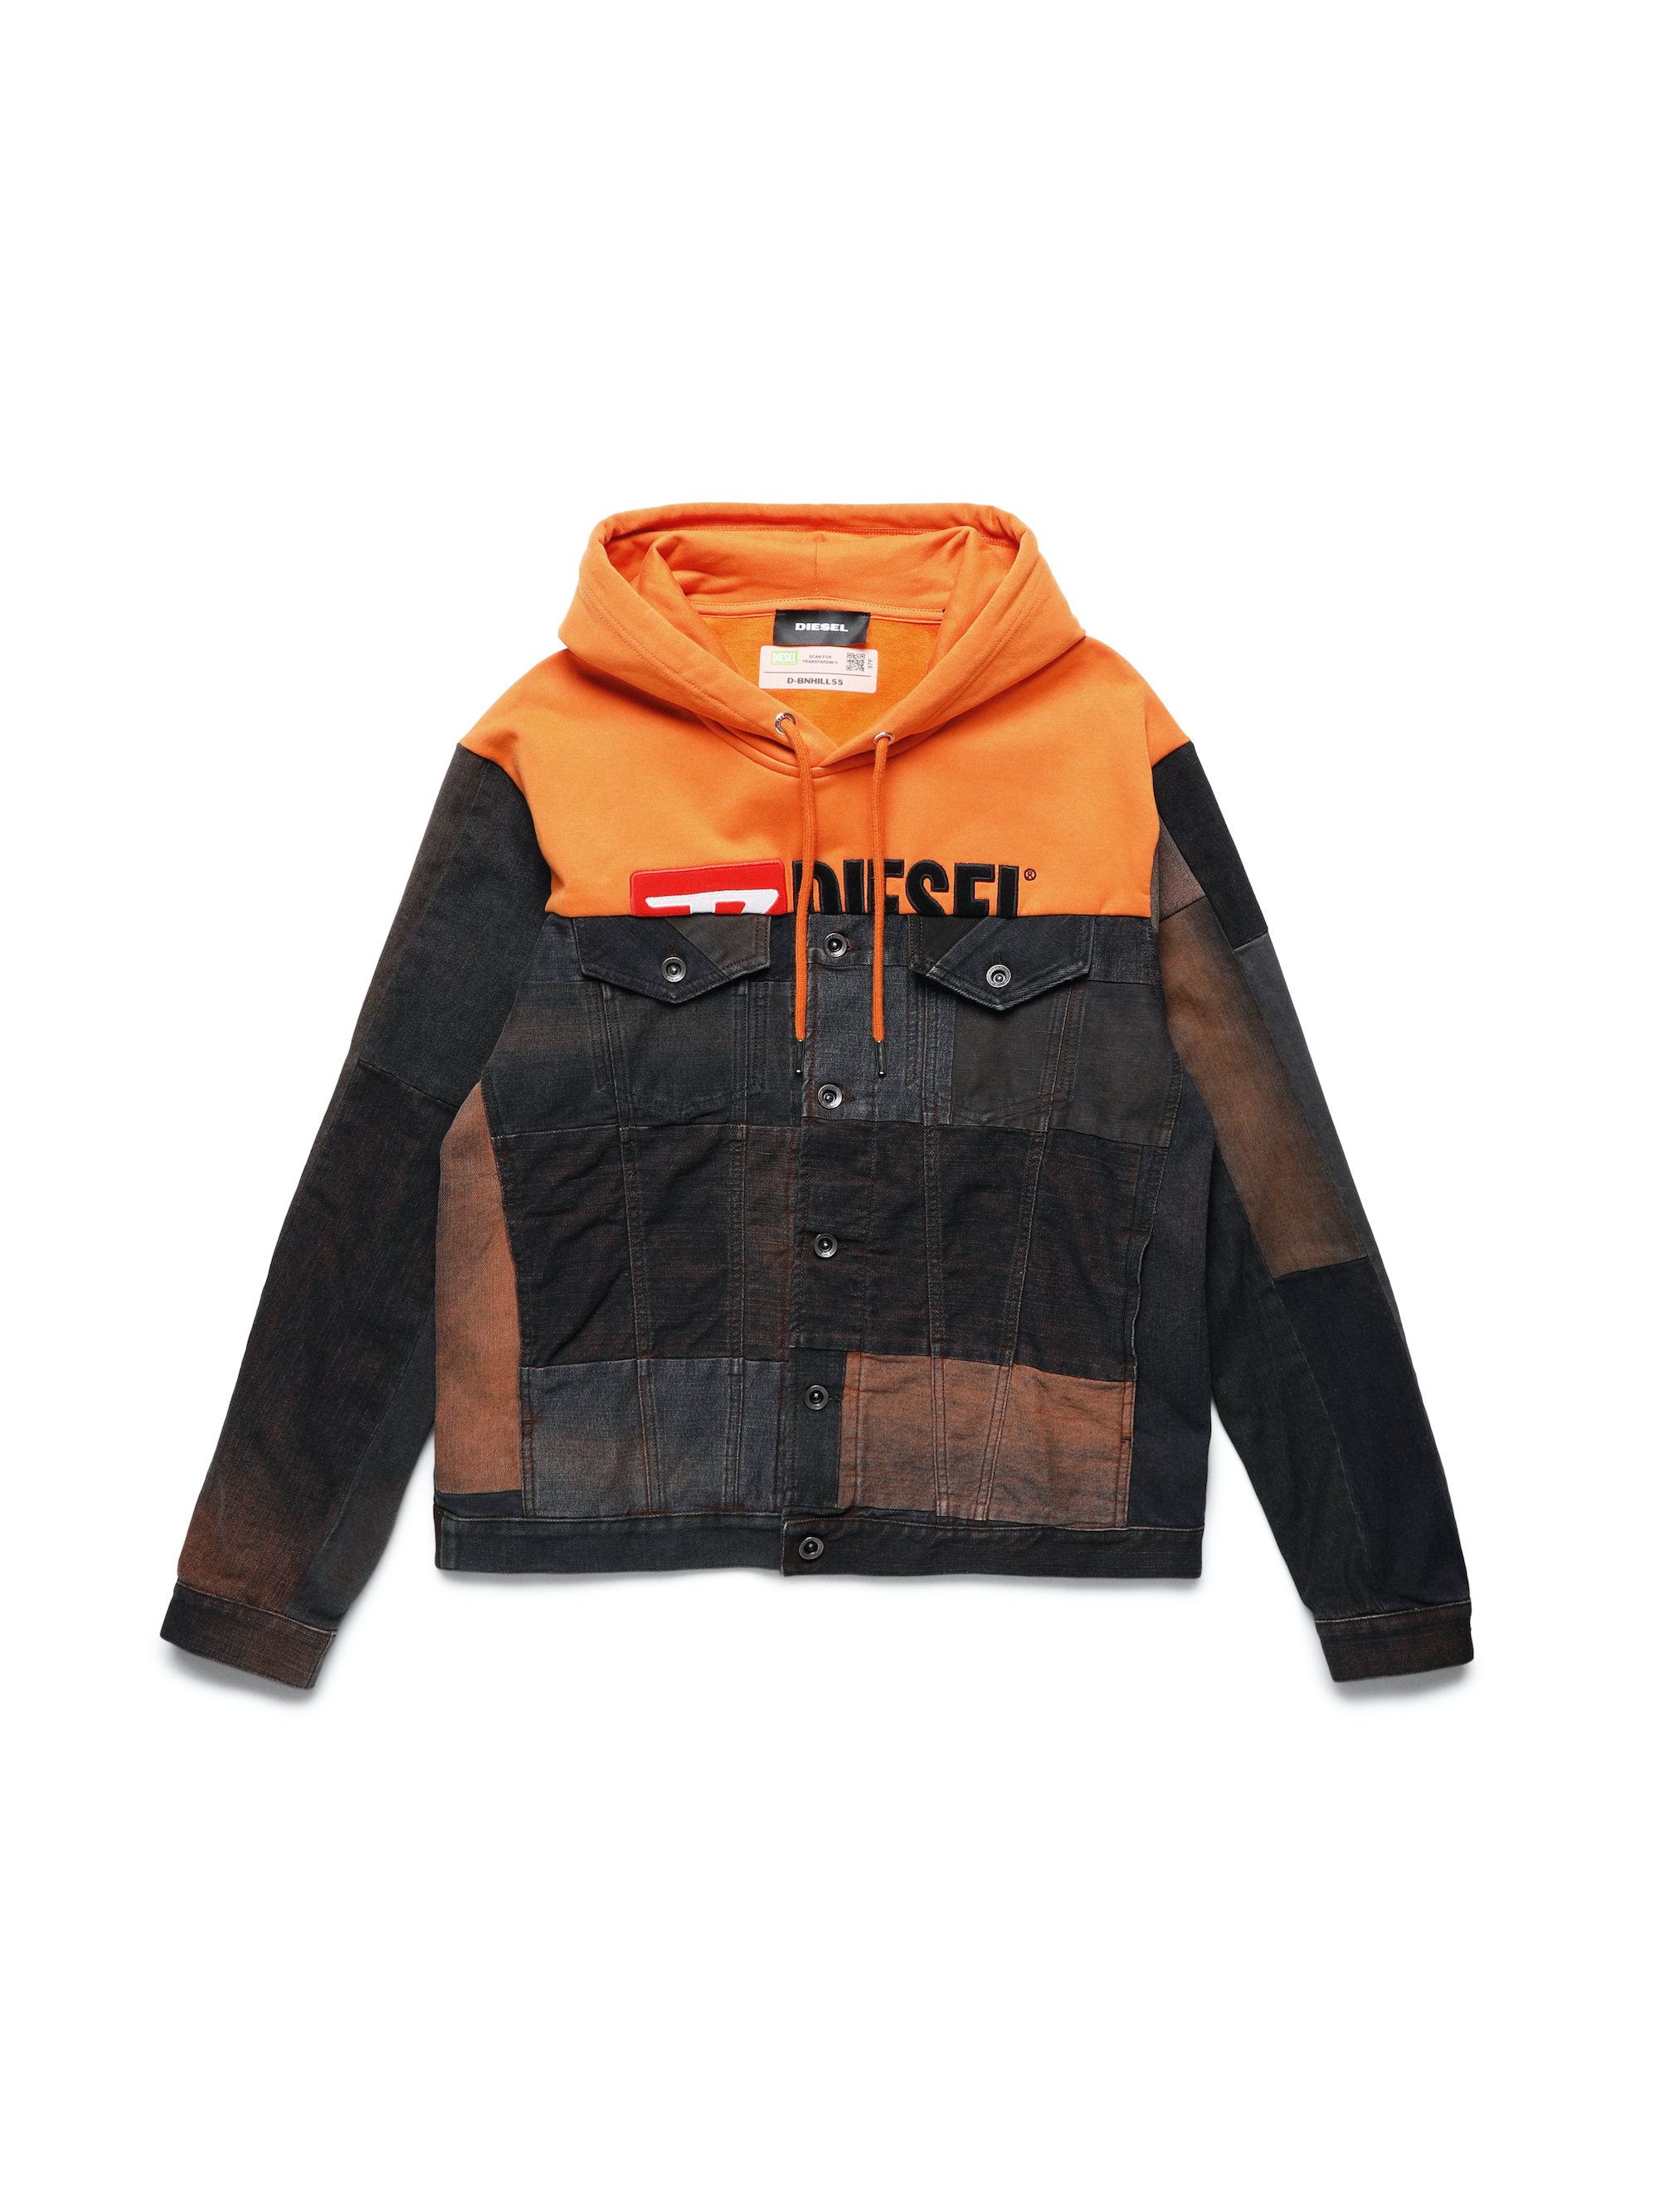 DIESEL UPCYCLING FOR 55DSL orange demin jacket